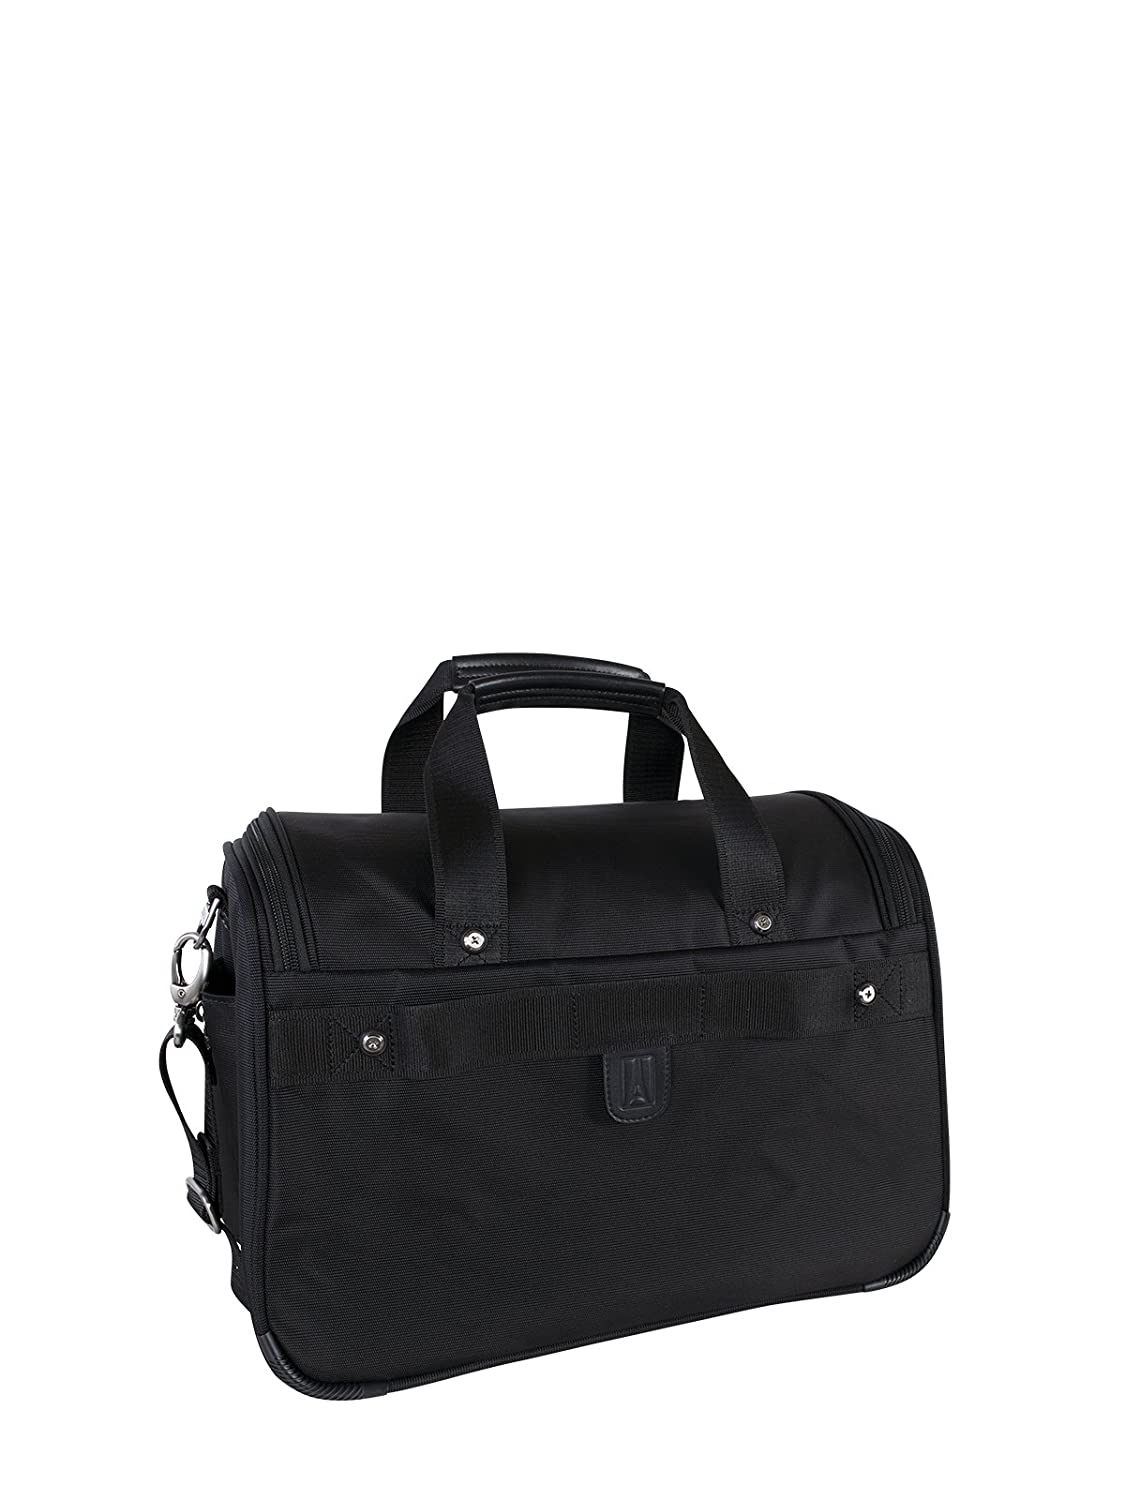 Travelpro Crew 11 Under Seat Luggage International Carry-On Tote Bag 15-Inch Black